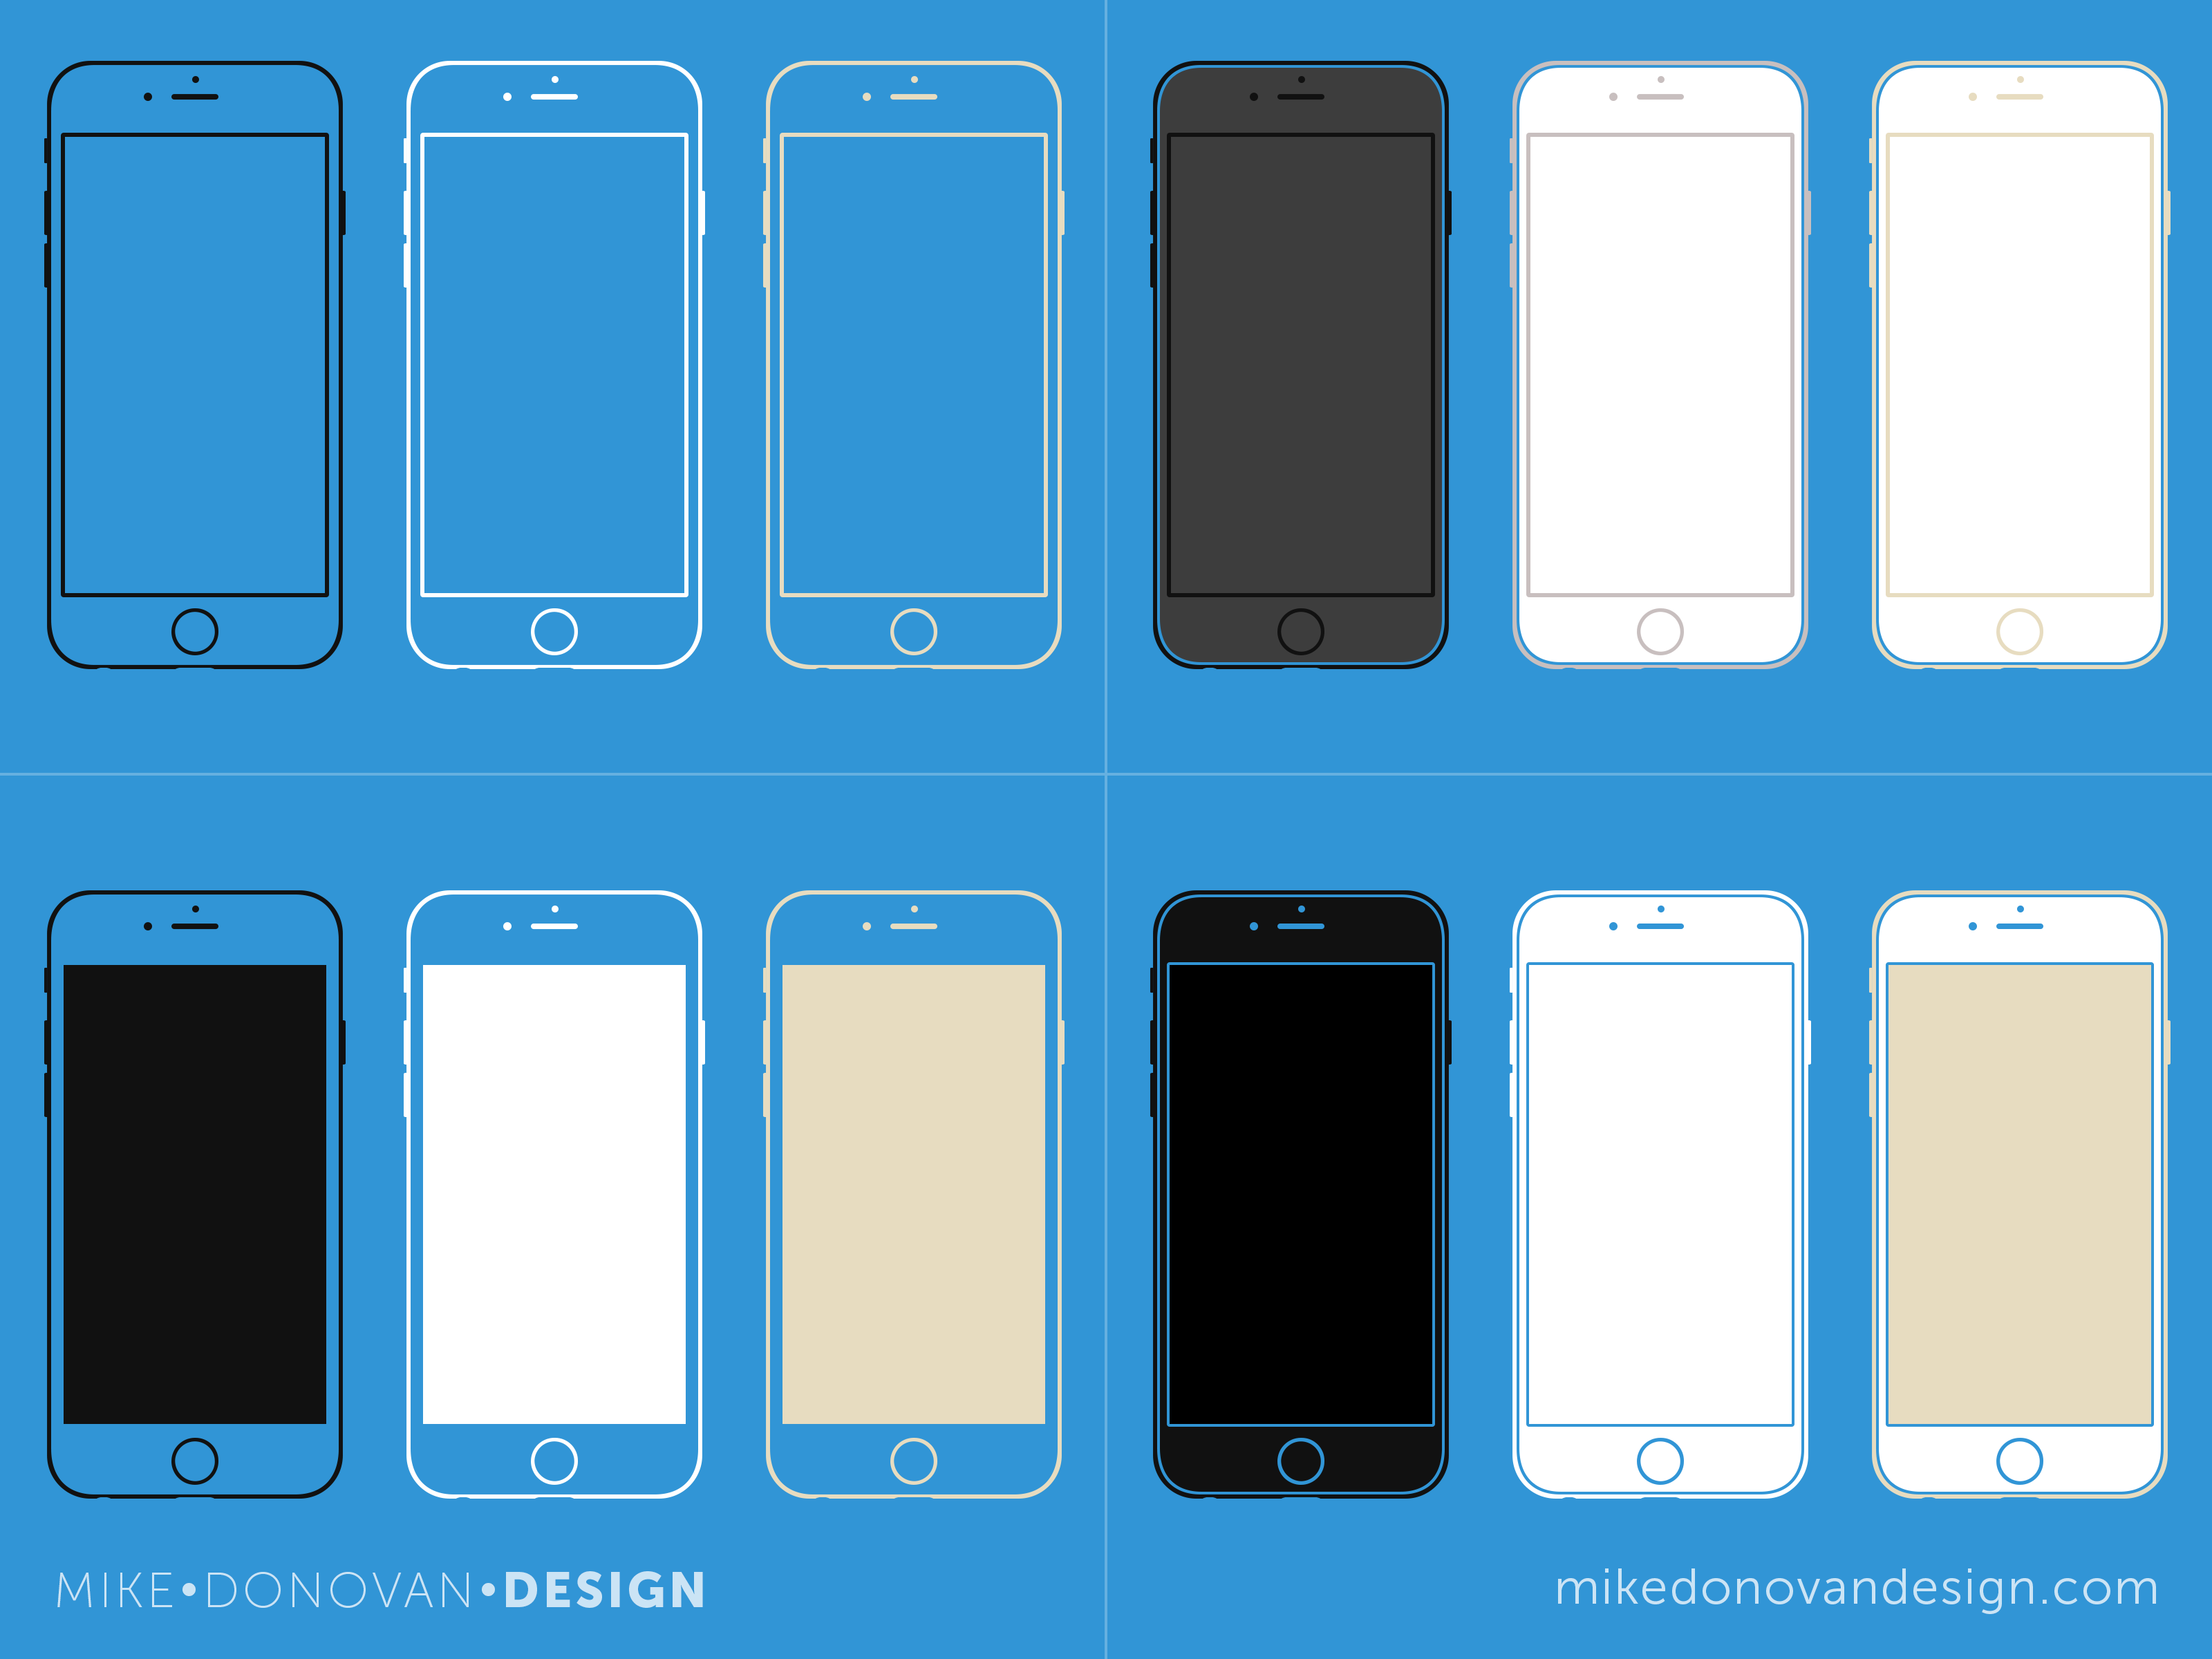 Iphone 6 wireframes full